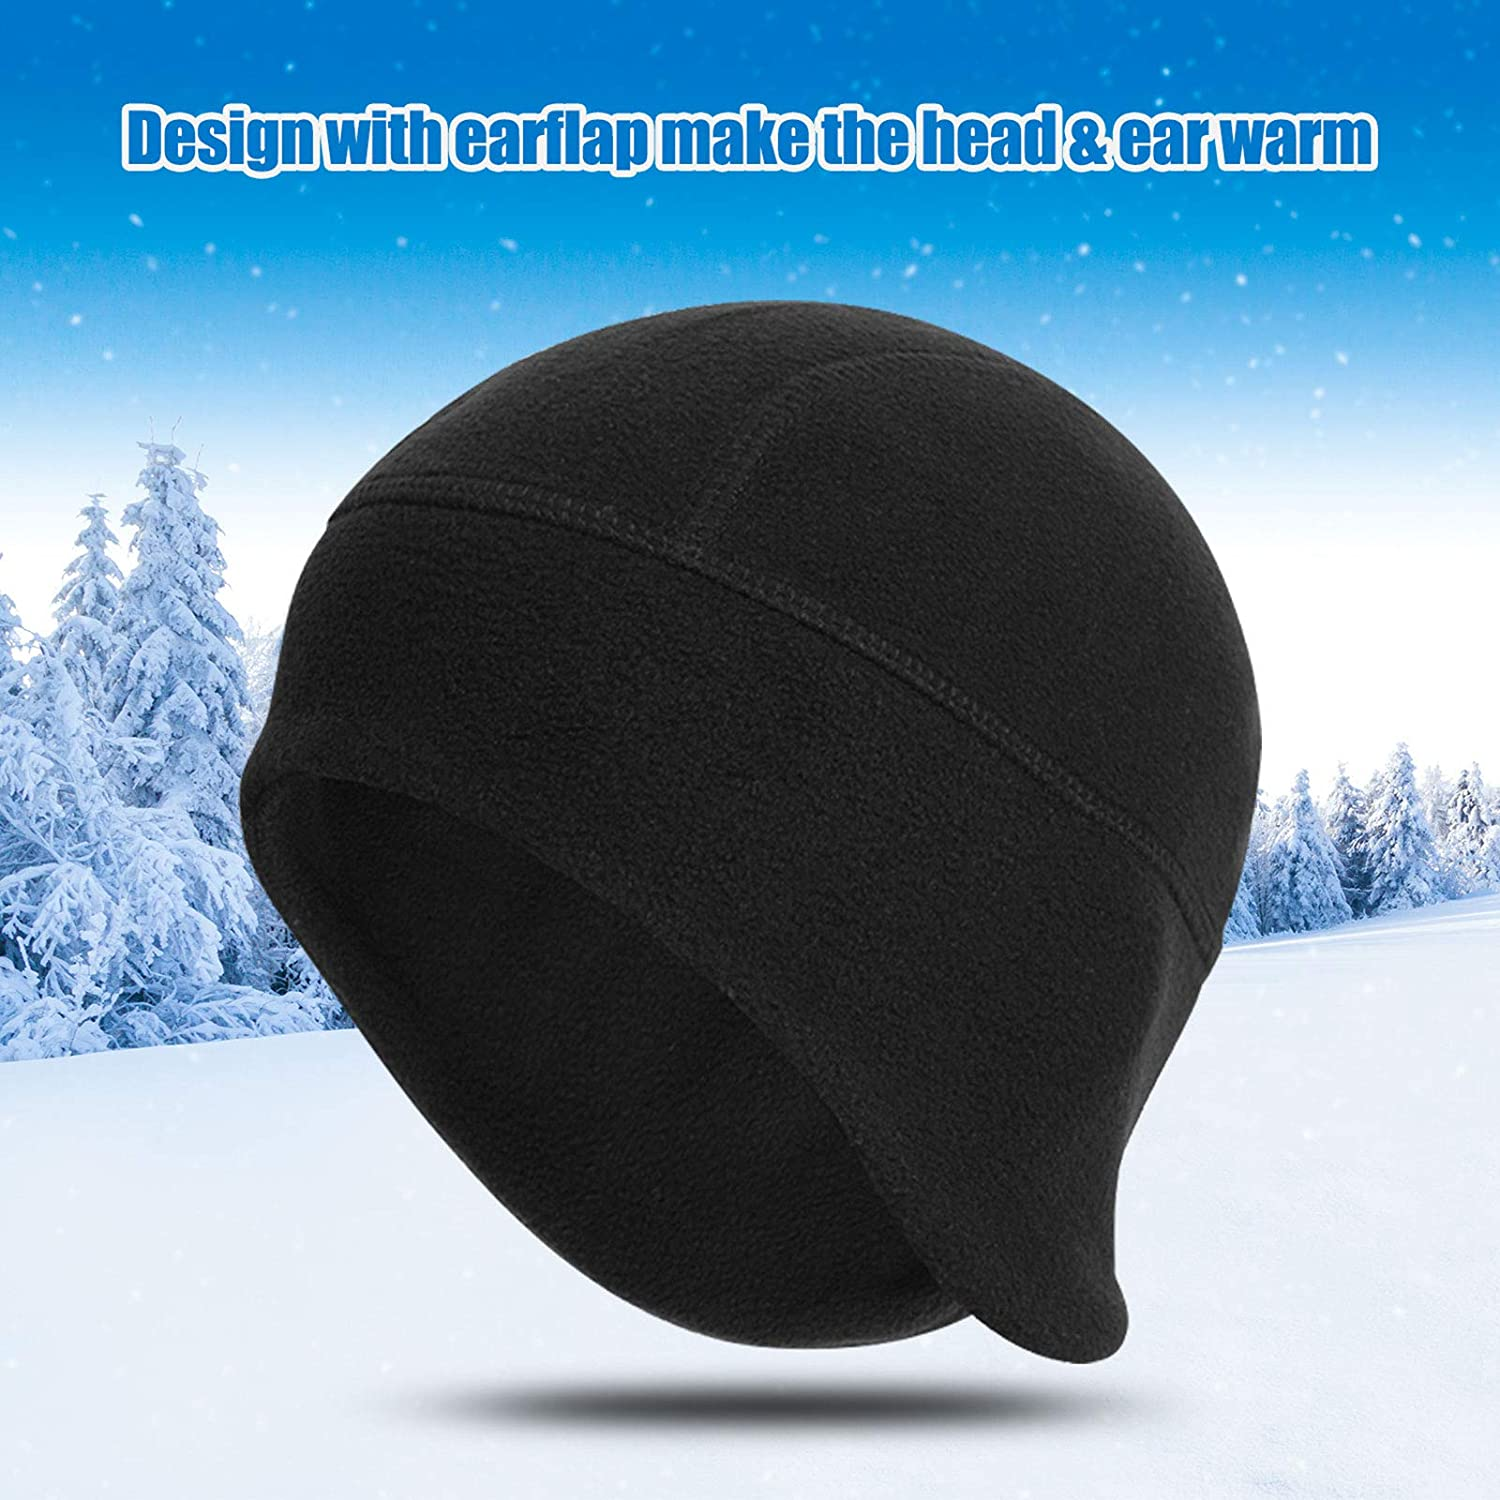 Sport Beanie Hat with Ear Covers for Men Women Running Skiing /& Winter Sports-Perfect Under Motorcycle Helmets,Hard Hat Cushion QKURT Winter Cycling Skull Cap